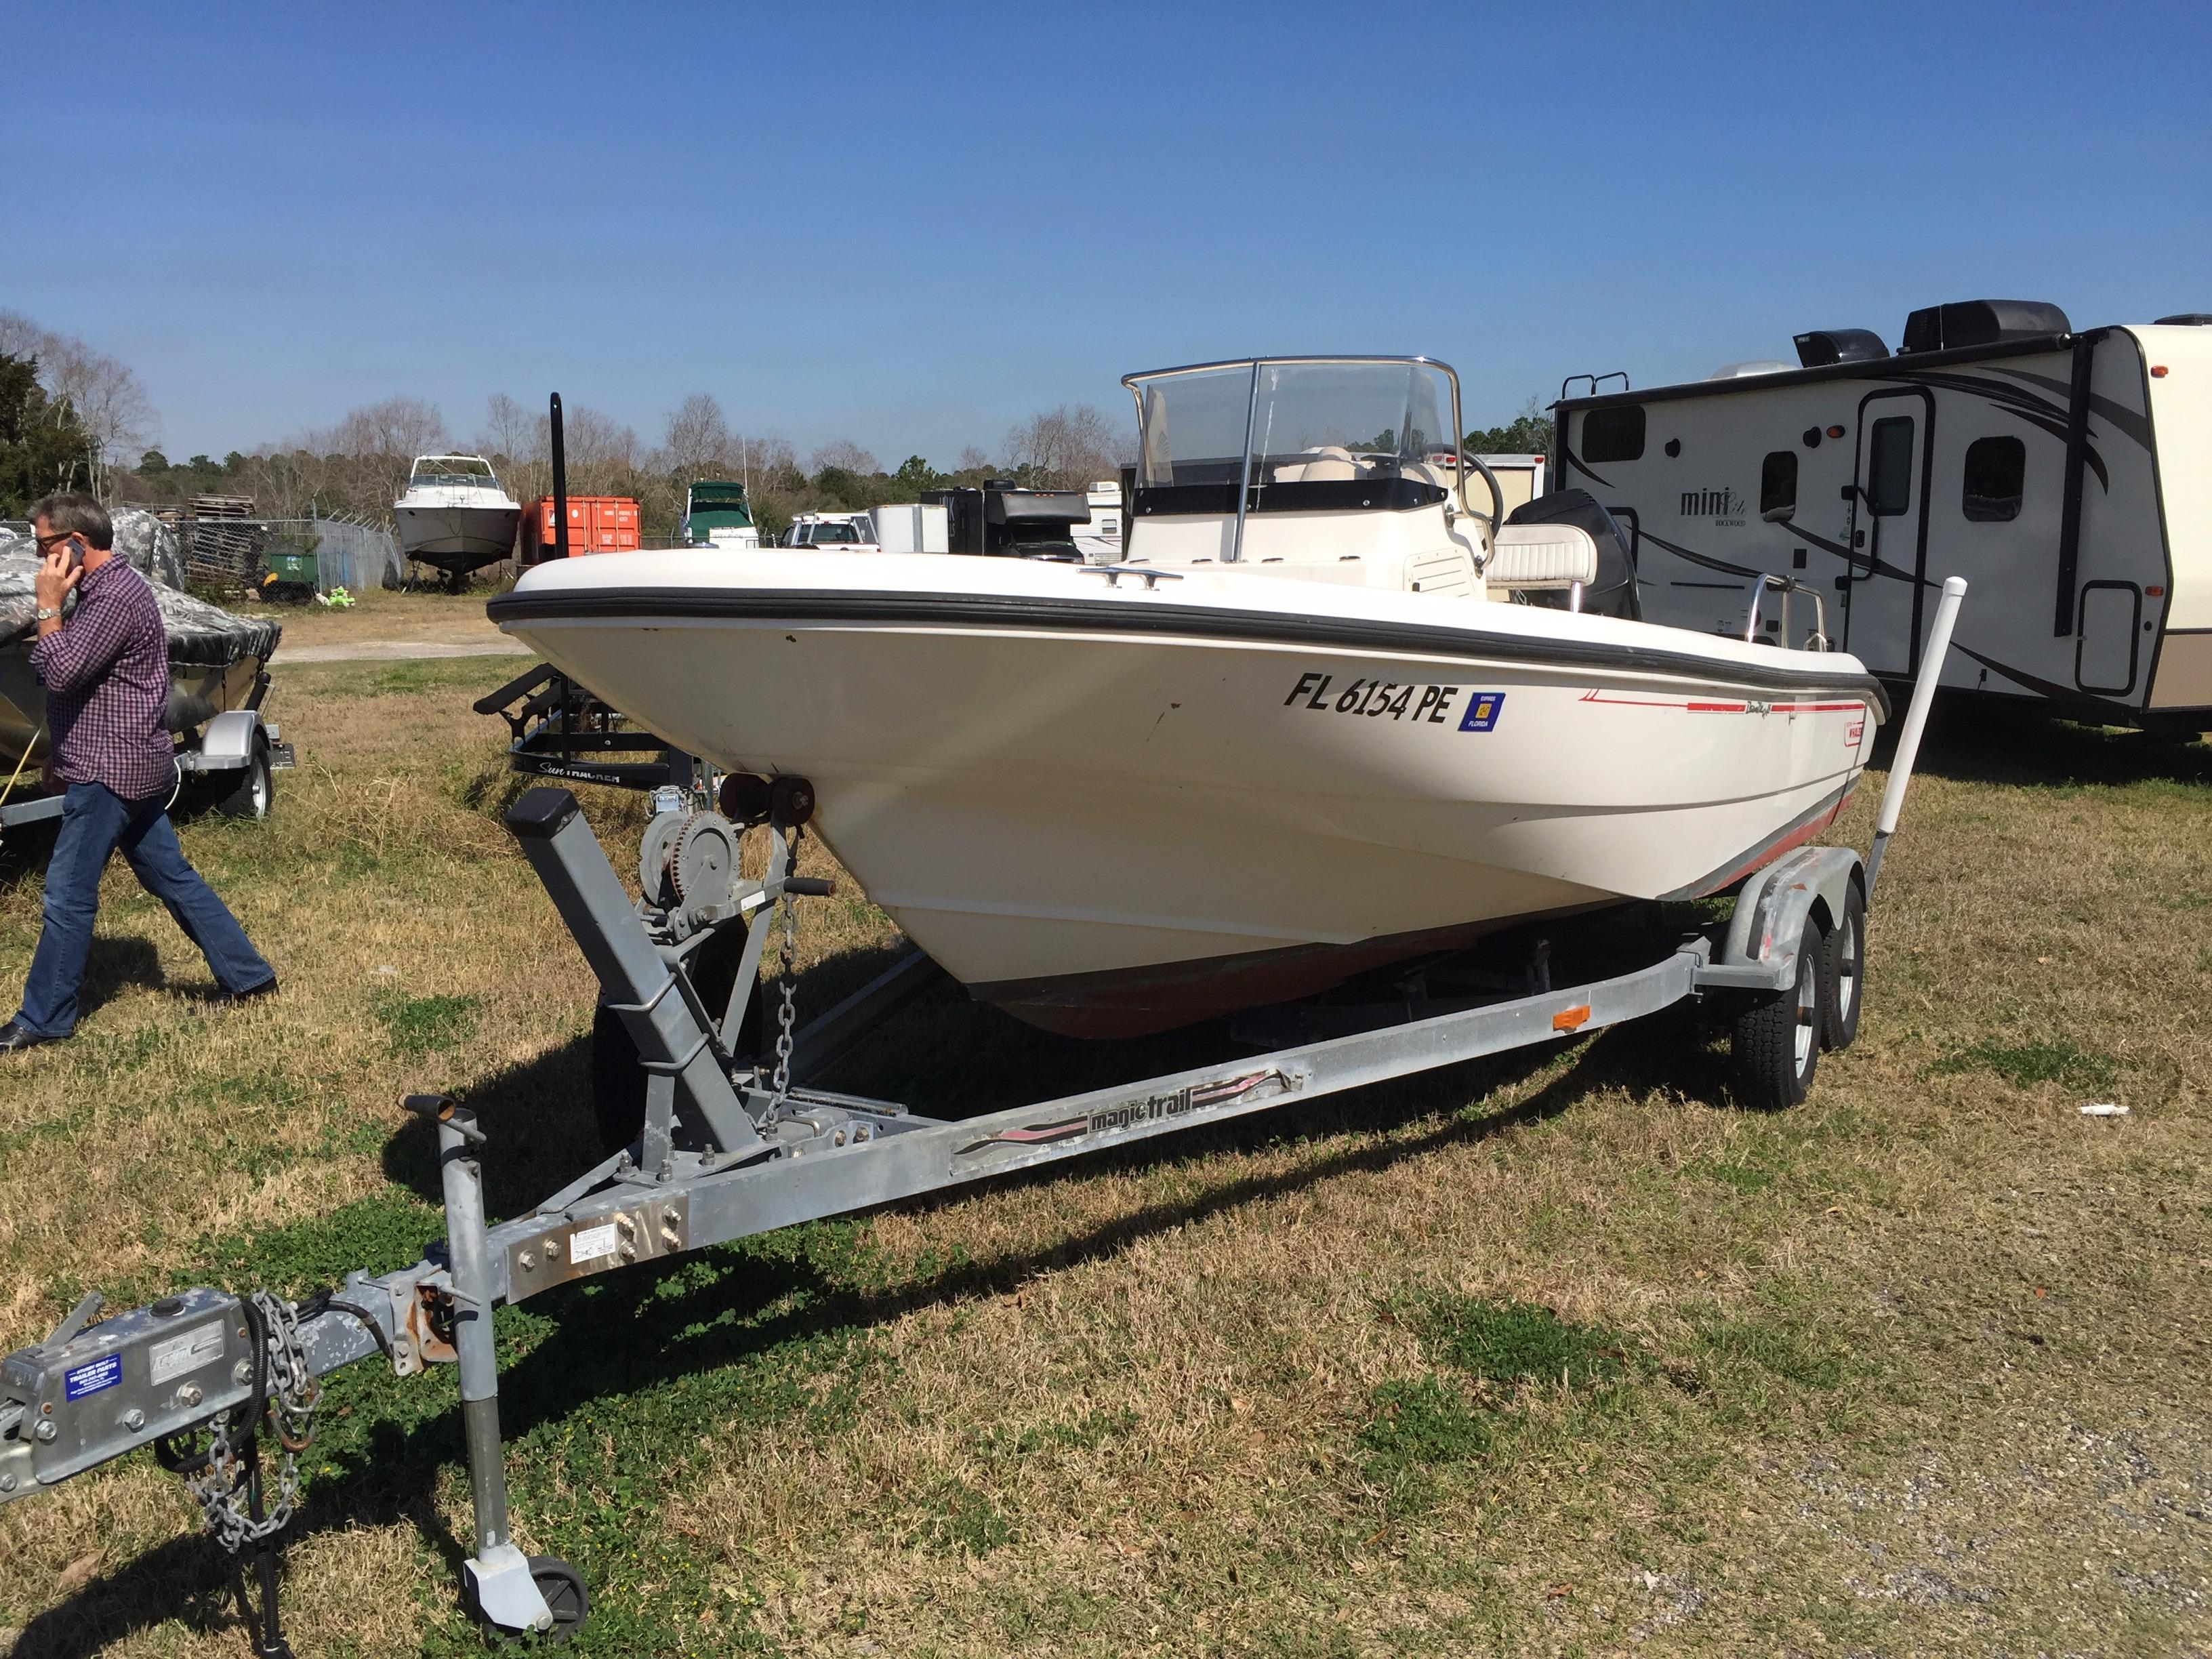 6145792_20170217112028541_1_XLARGE&w=924&h=693&t=1487359229000 1998 boston whaler 18 dauntless power boat for sale www boston whaler wiring harness at nearapp.co